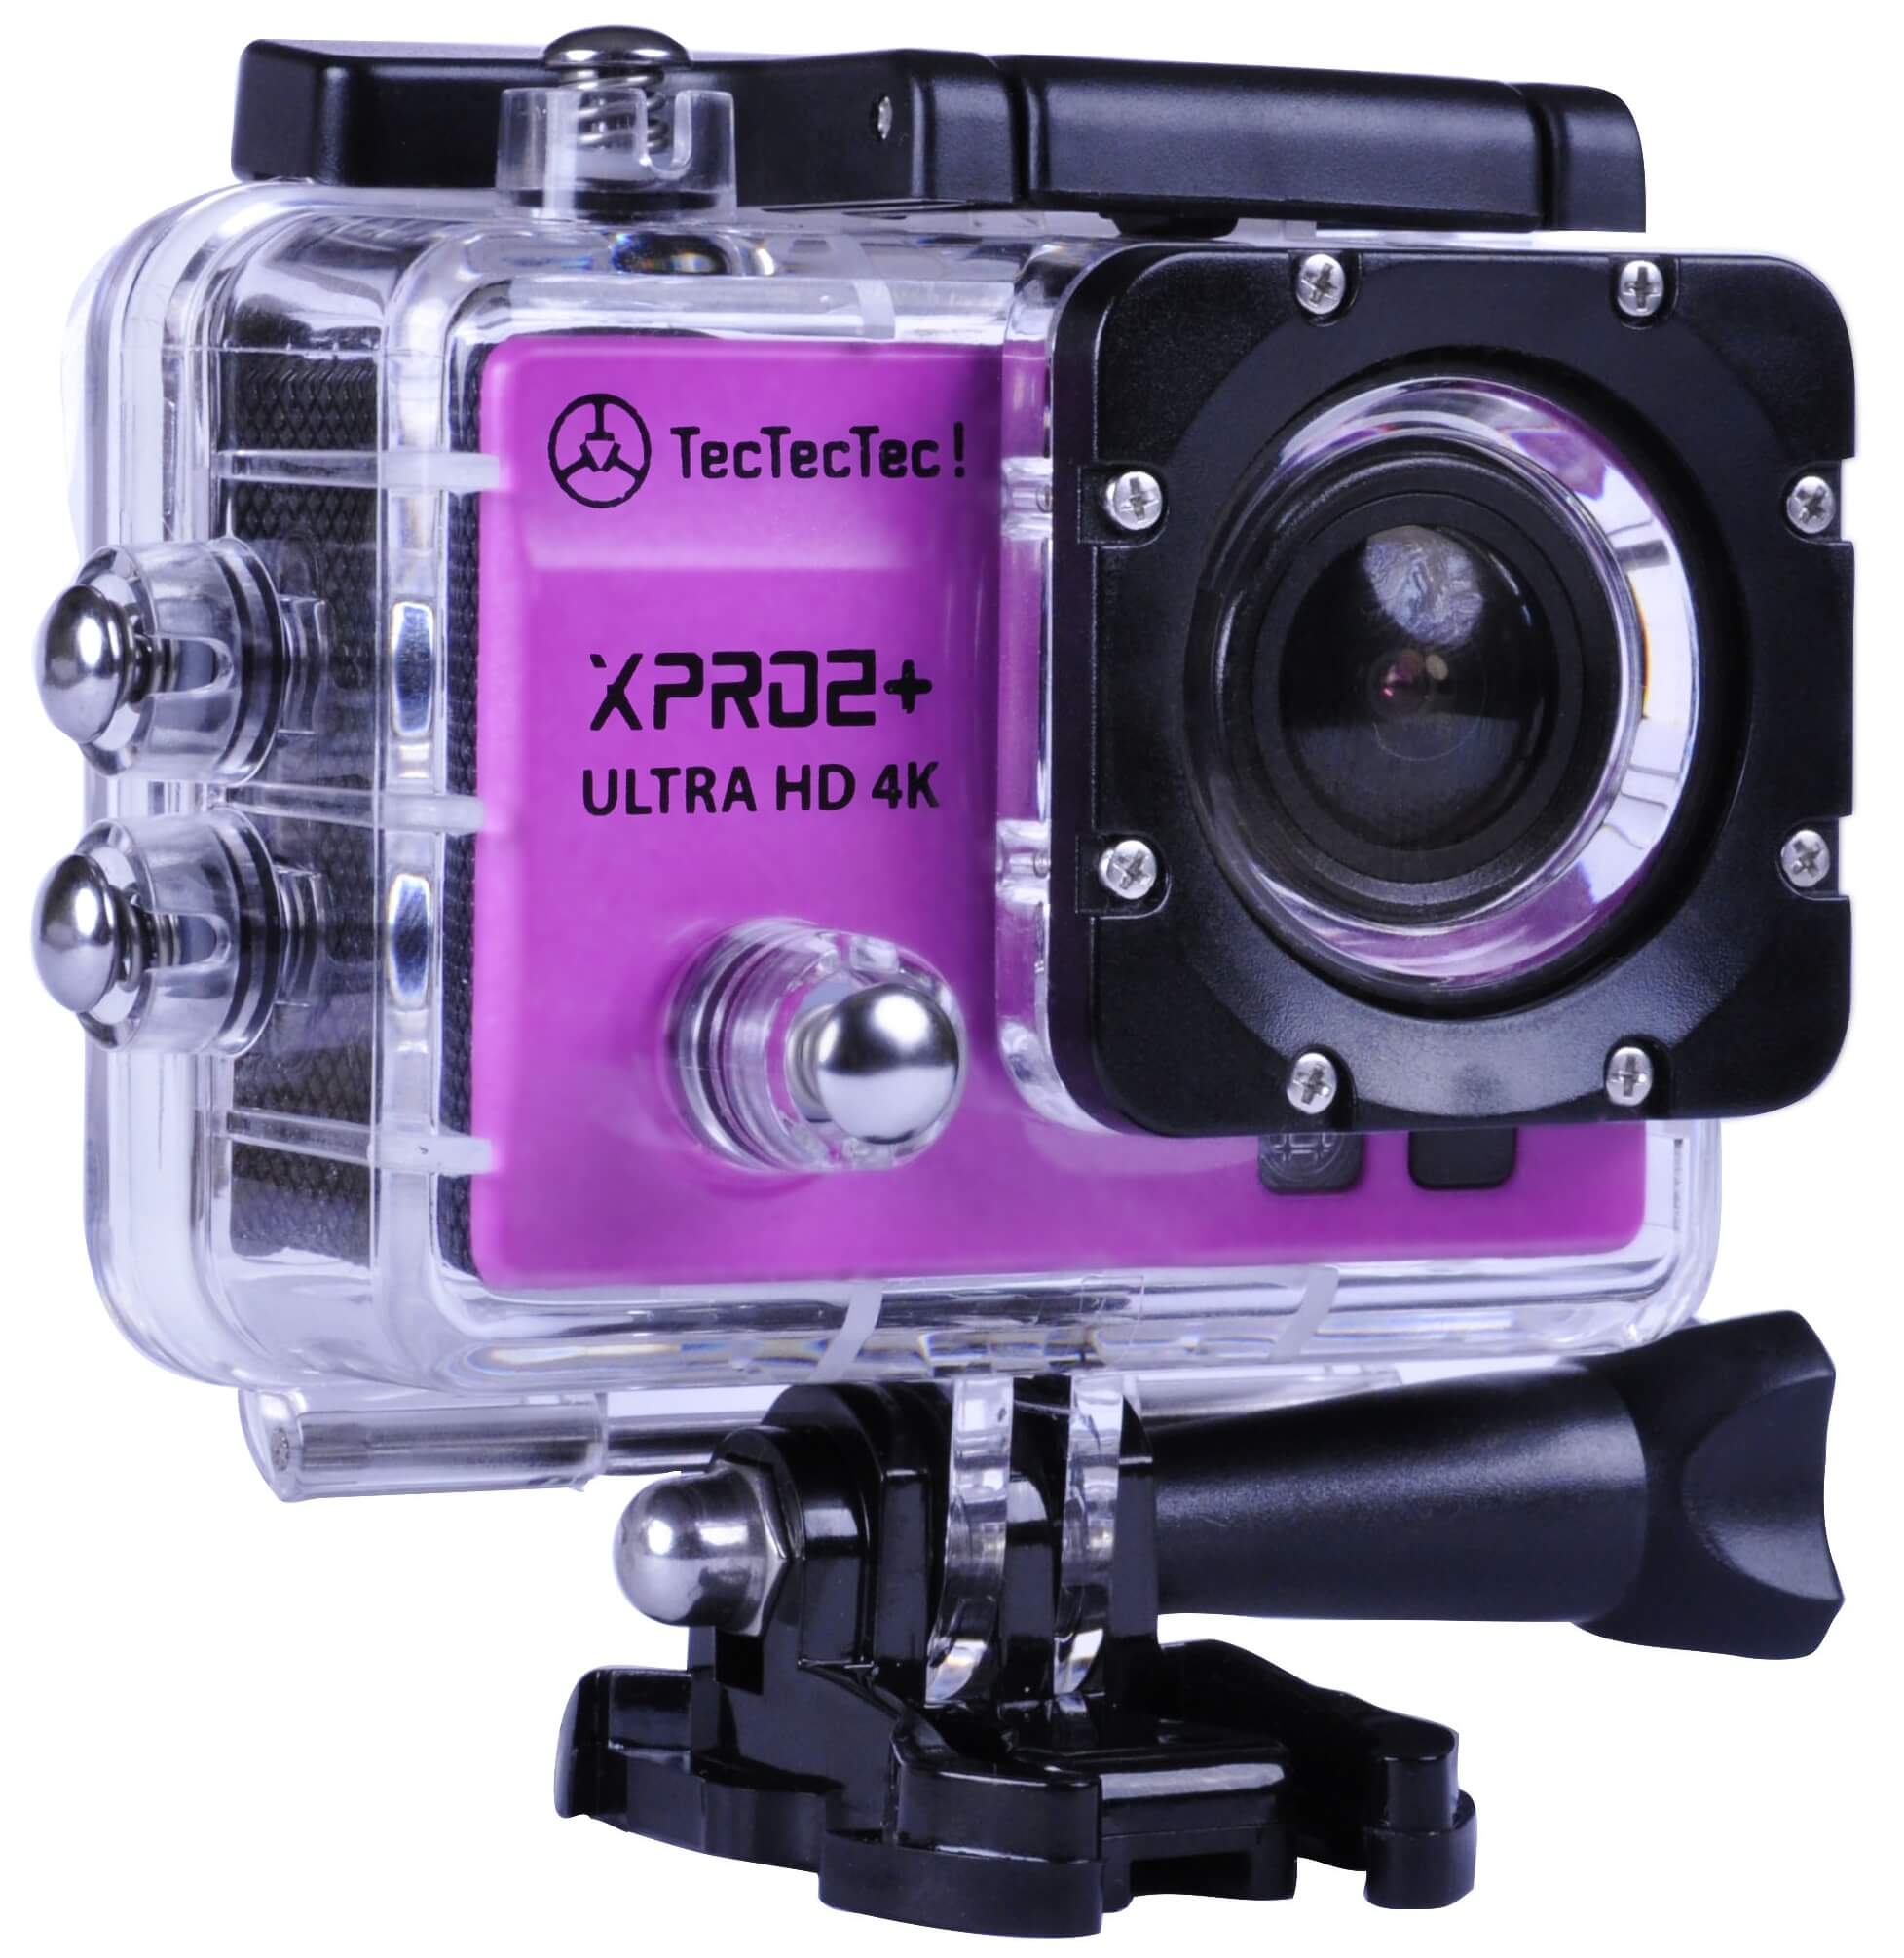 Xpro2 Action Camera Tectectec Sport Cam 4k Full Hd With Remote